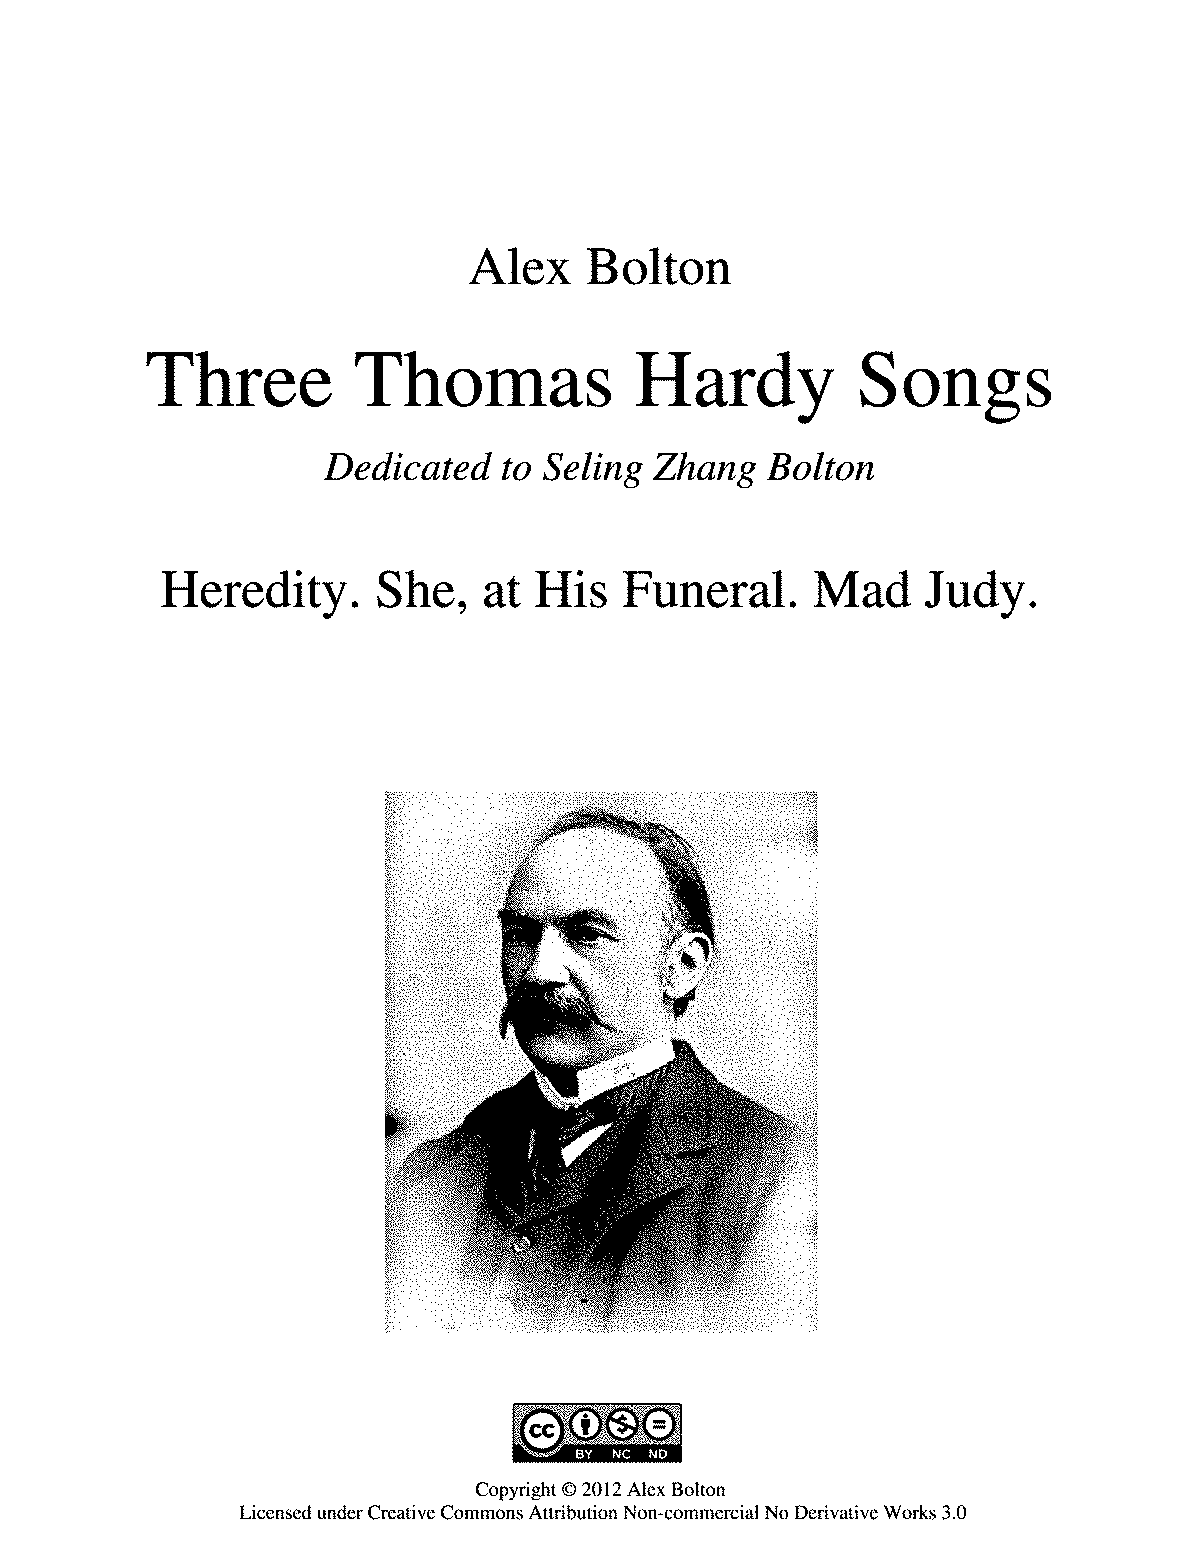 PMLP432577-Bolton - Three Hardy Songs 1 Heredity.pdf